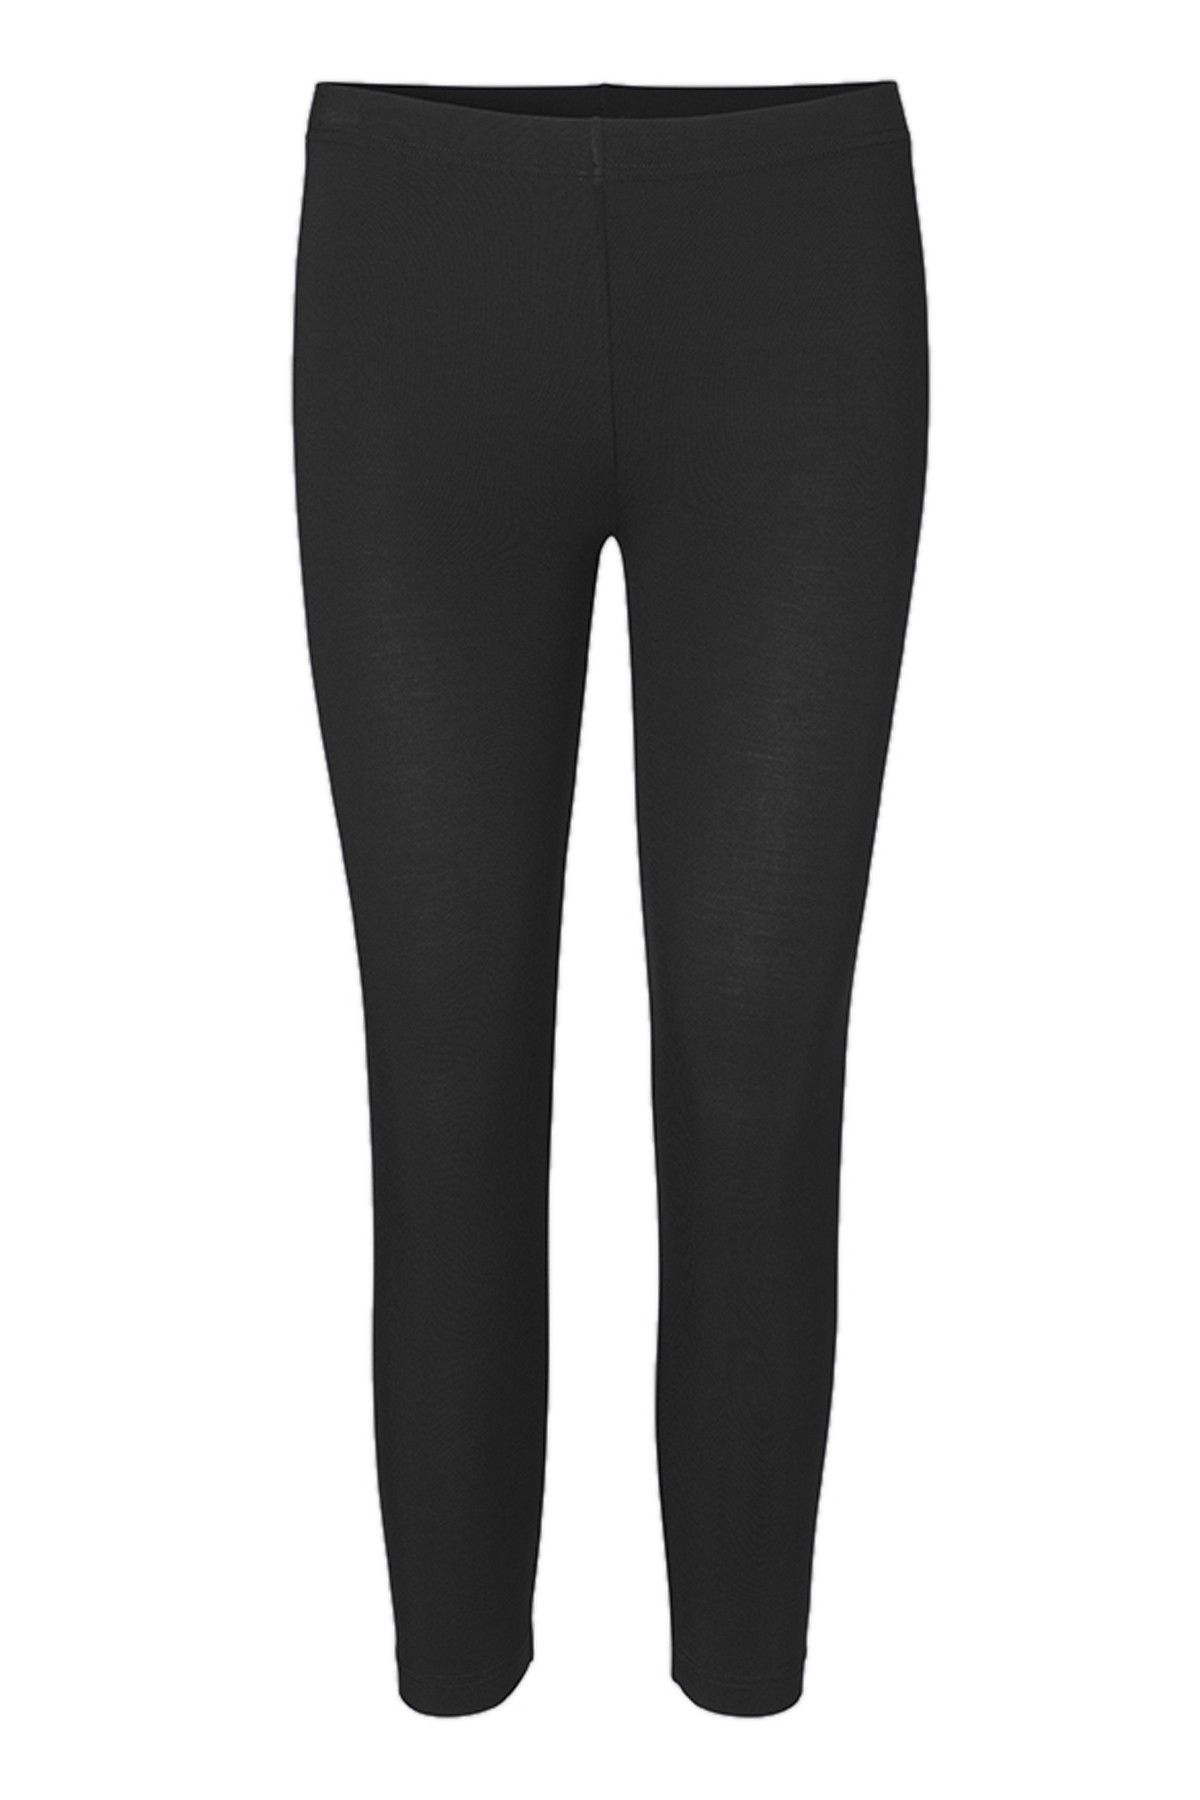 NOA NOA LEGGINGS 1-9383-1 00000 (Black, XS)